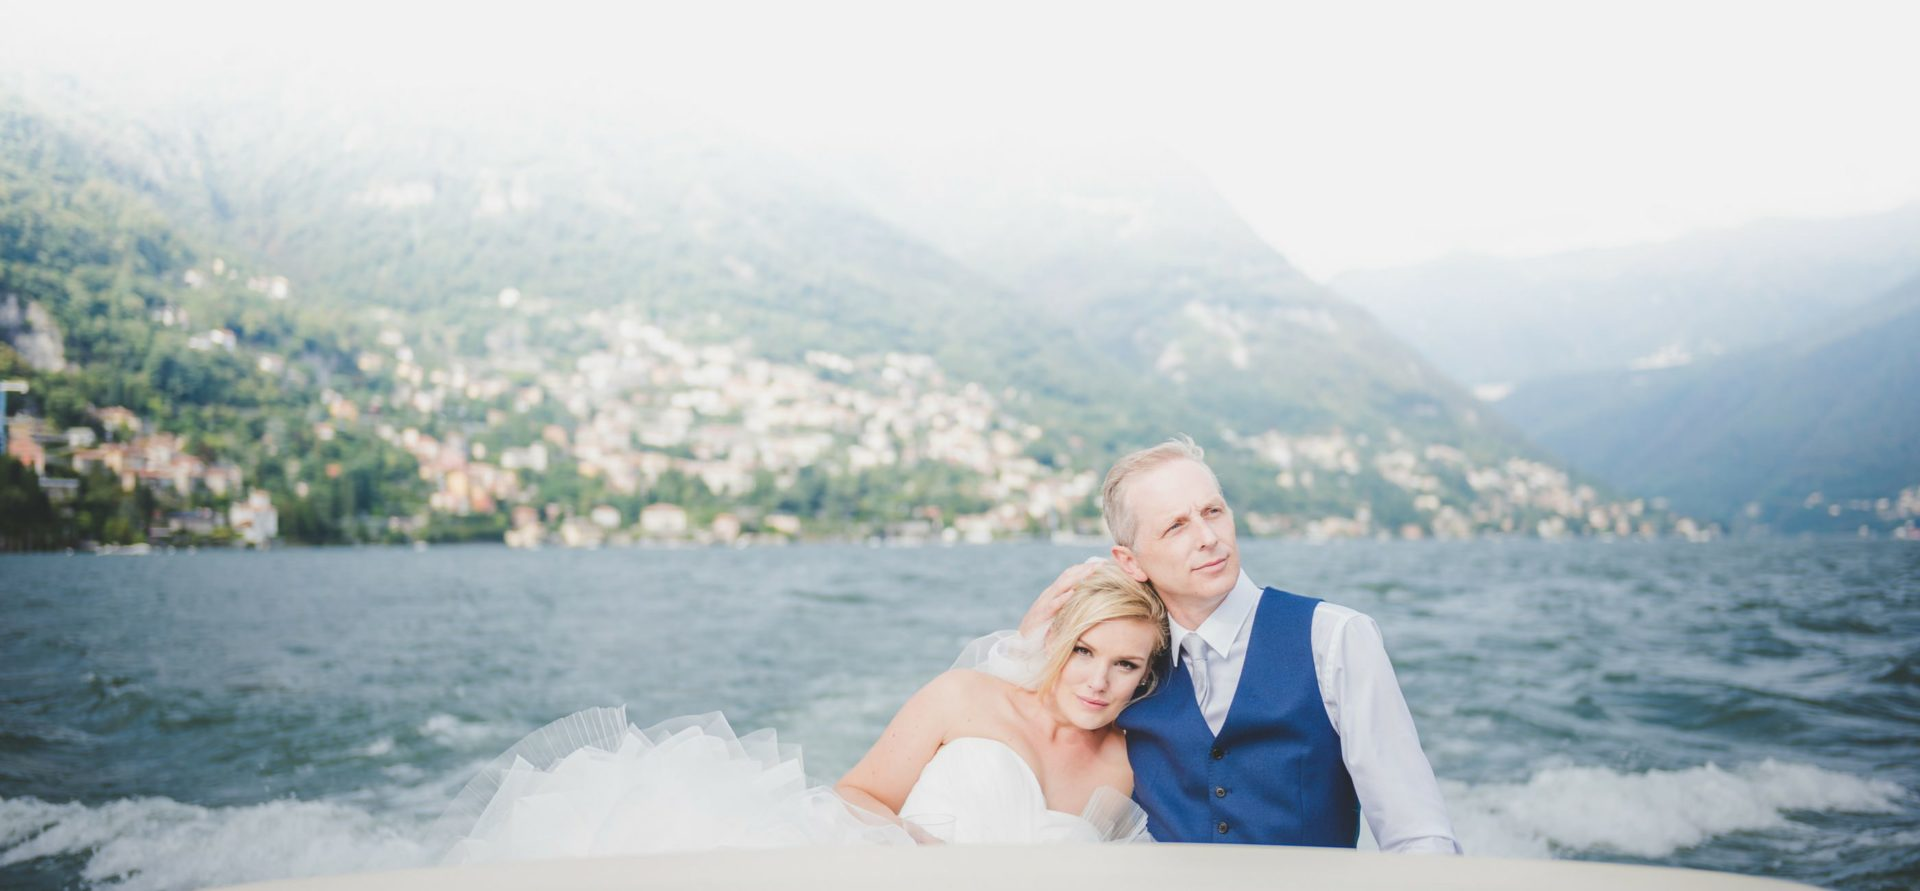 cardiff-south-wales-wedding-photographer-lake-como-wedding-carrie-cliff-bristol-swansea-lewis-fackrell-photography